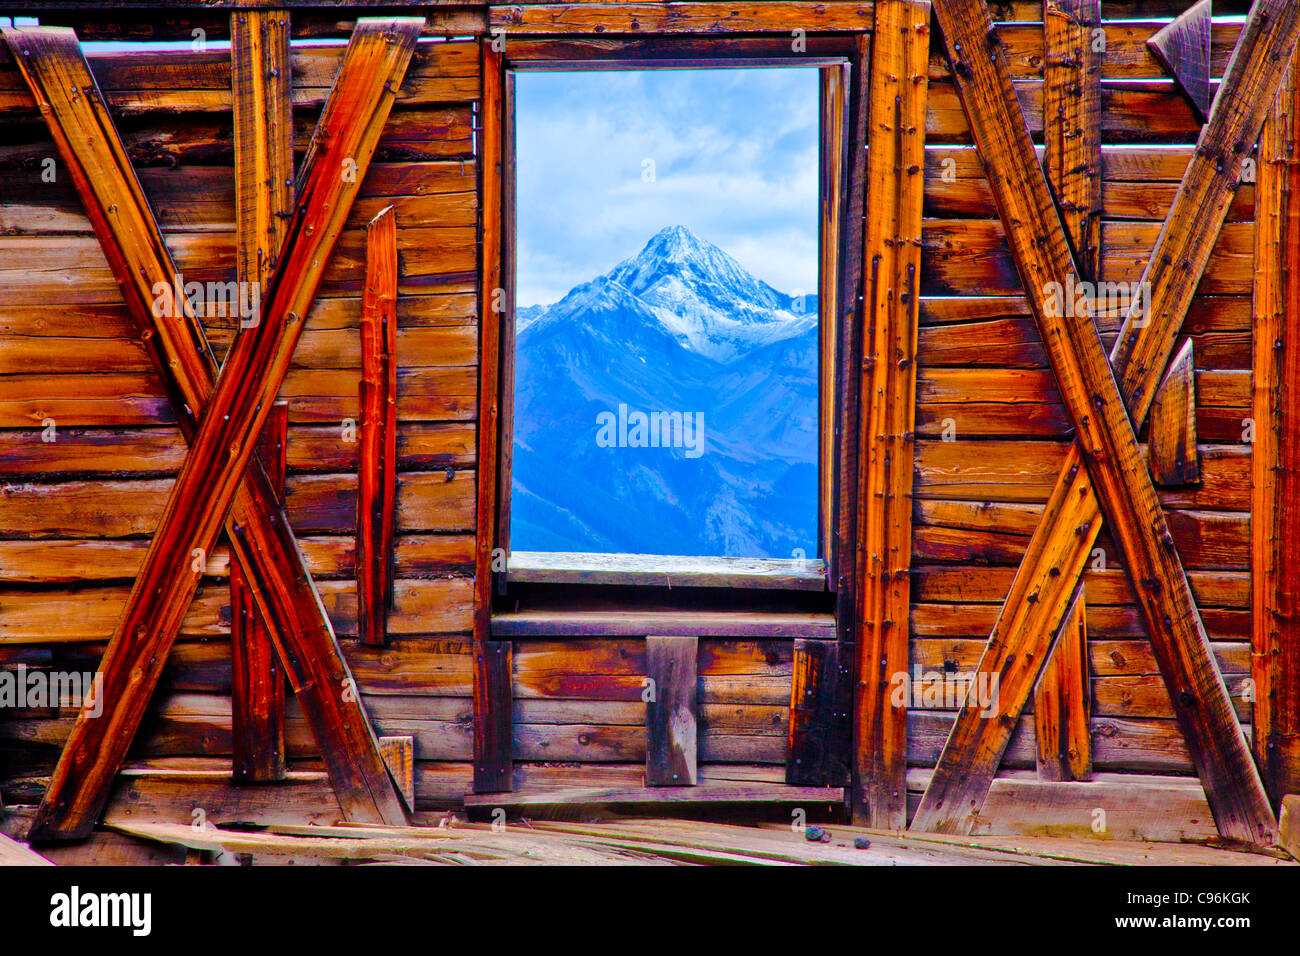 Wilson Pico vistos a través de la ventana Ghost Town, Alta Ciudad Fantasma, Colorado, Uncompahgre National Forest, Foto de stock